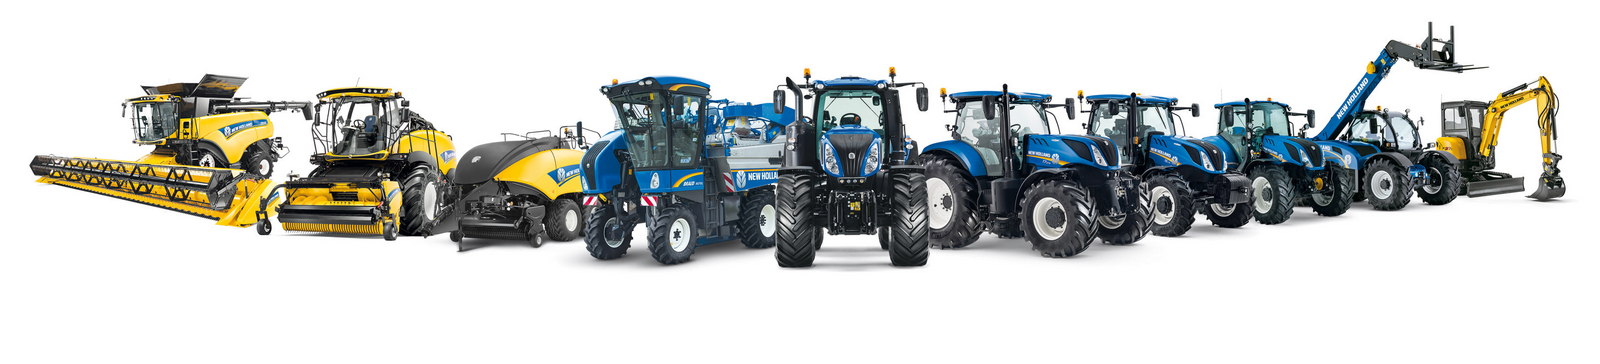 Foto vom New Holland Programm